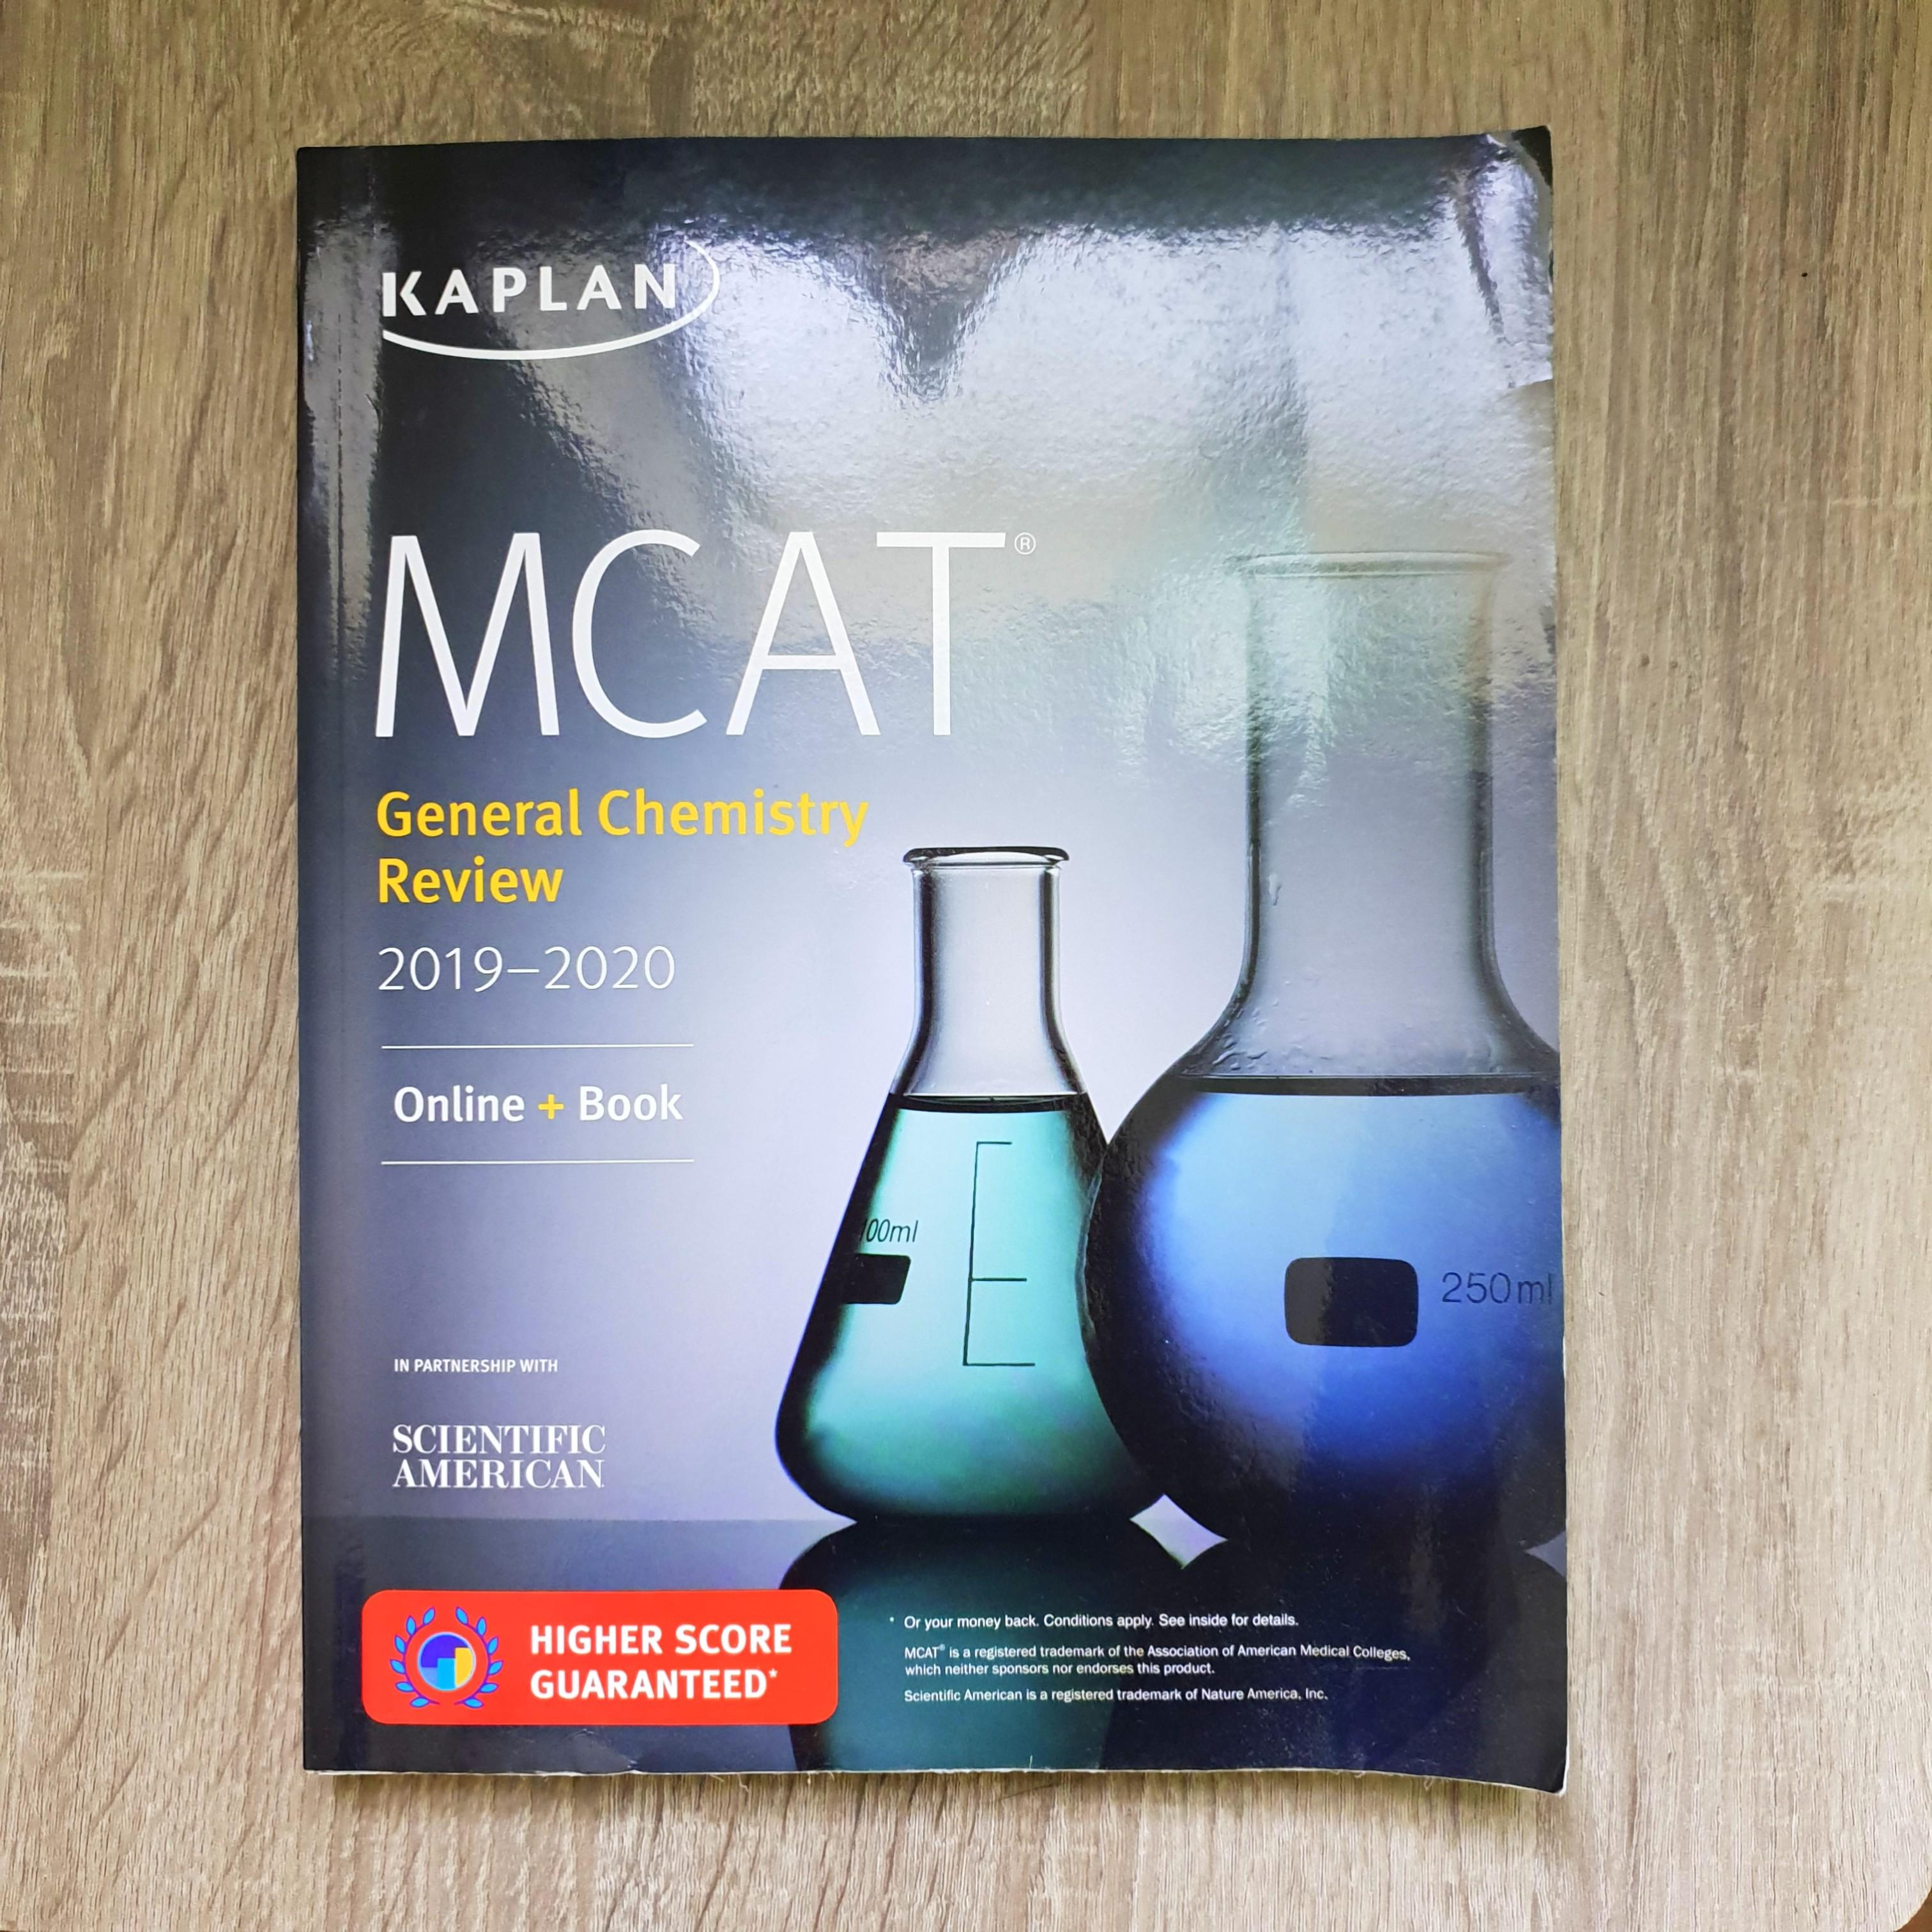 MCAT General Chemistry Reviewer 2019-2020 (Kaplan) on Carousell